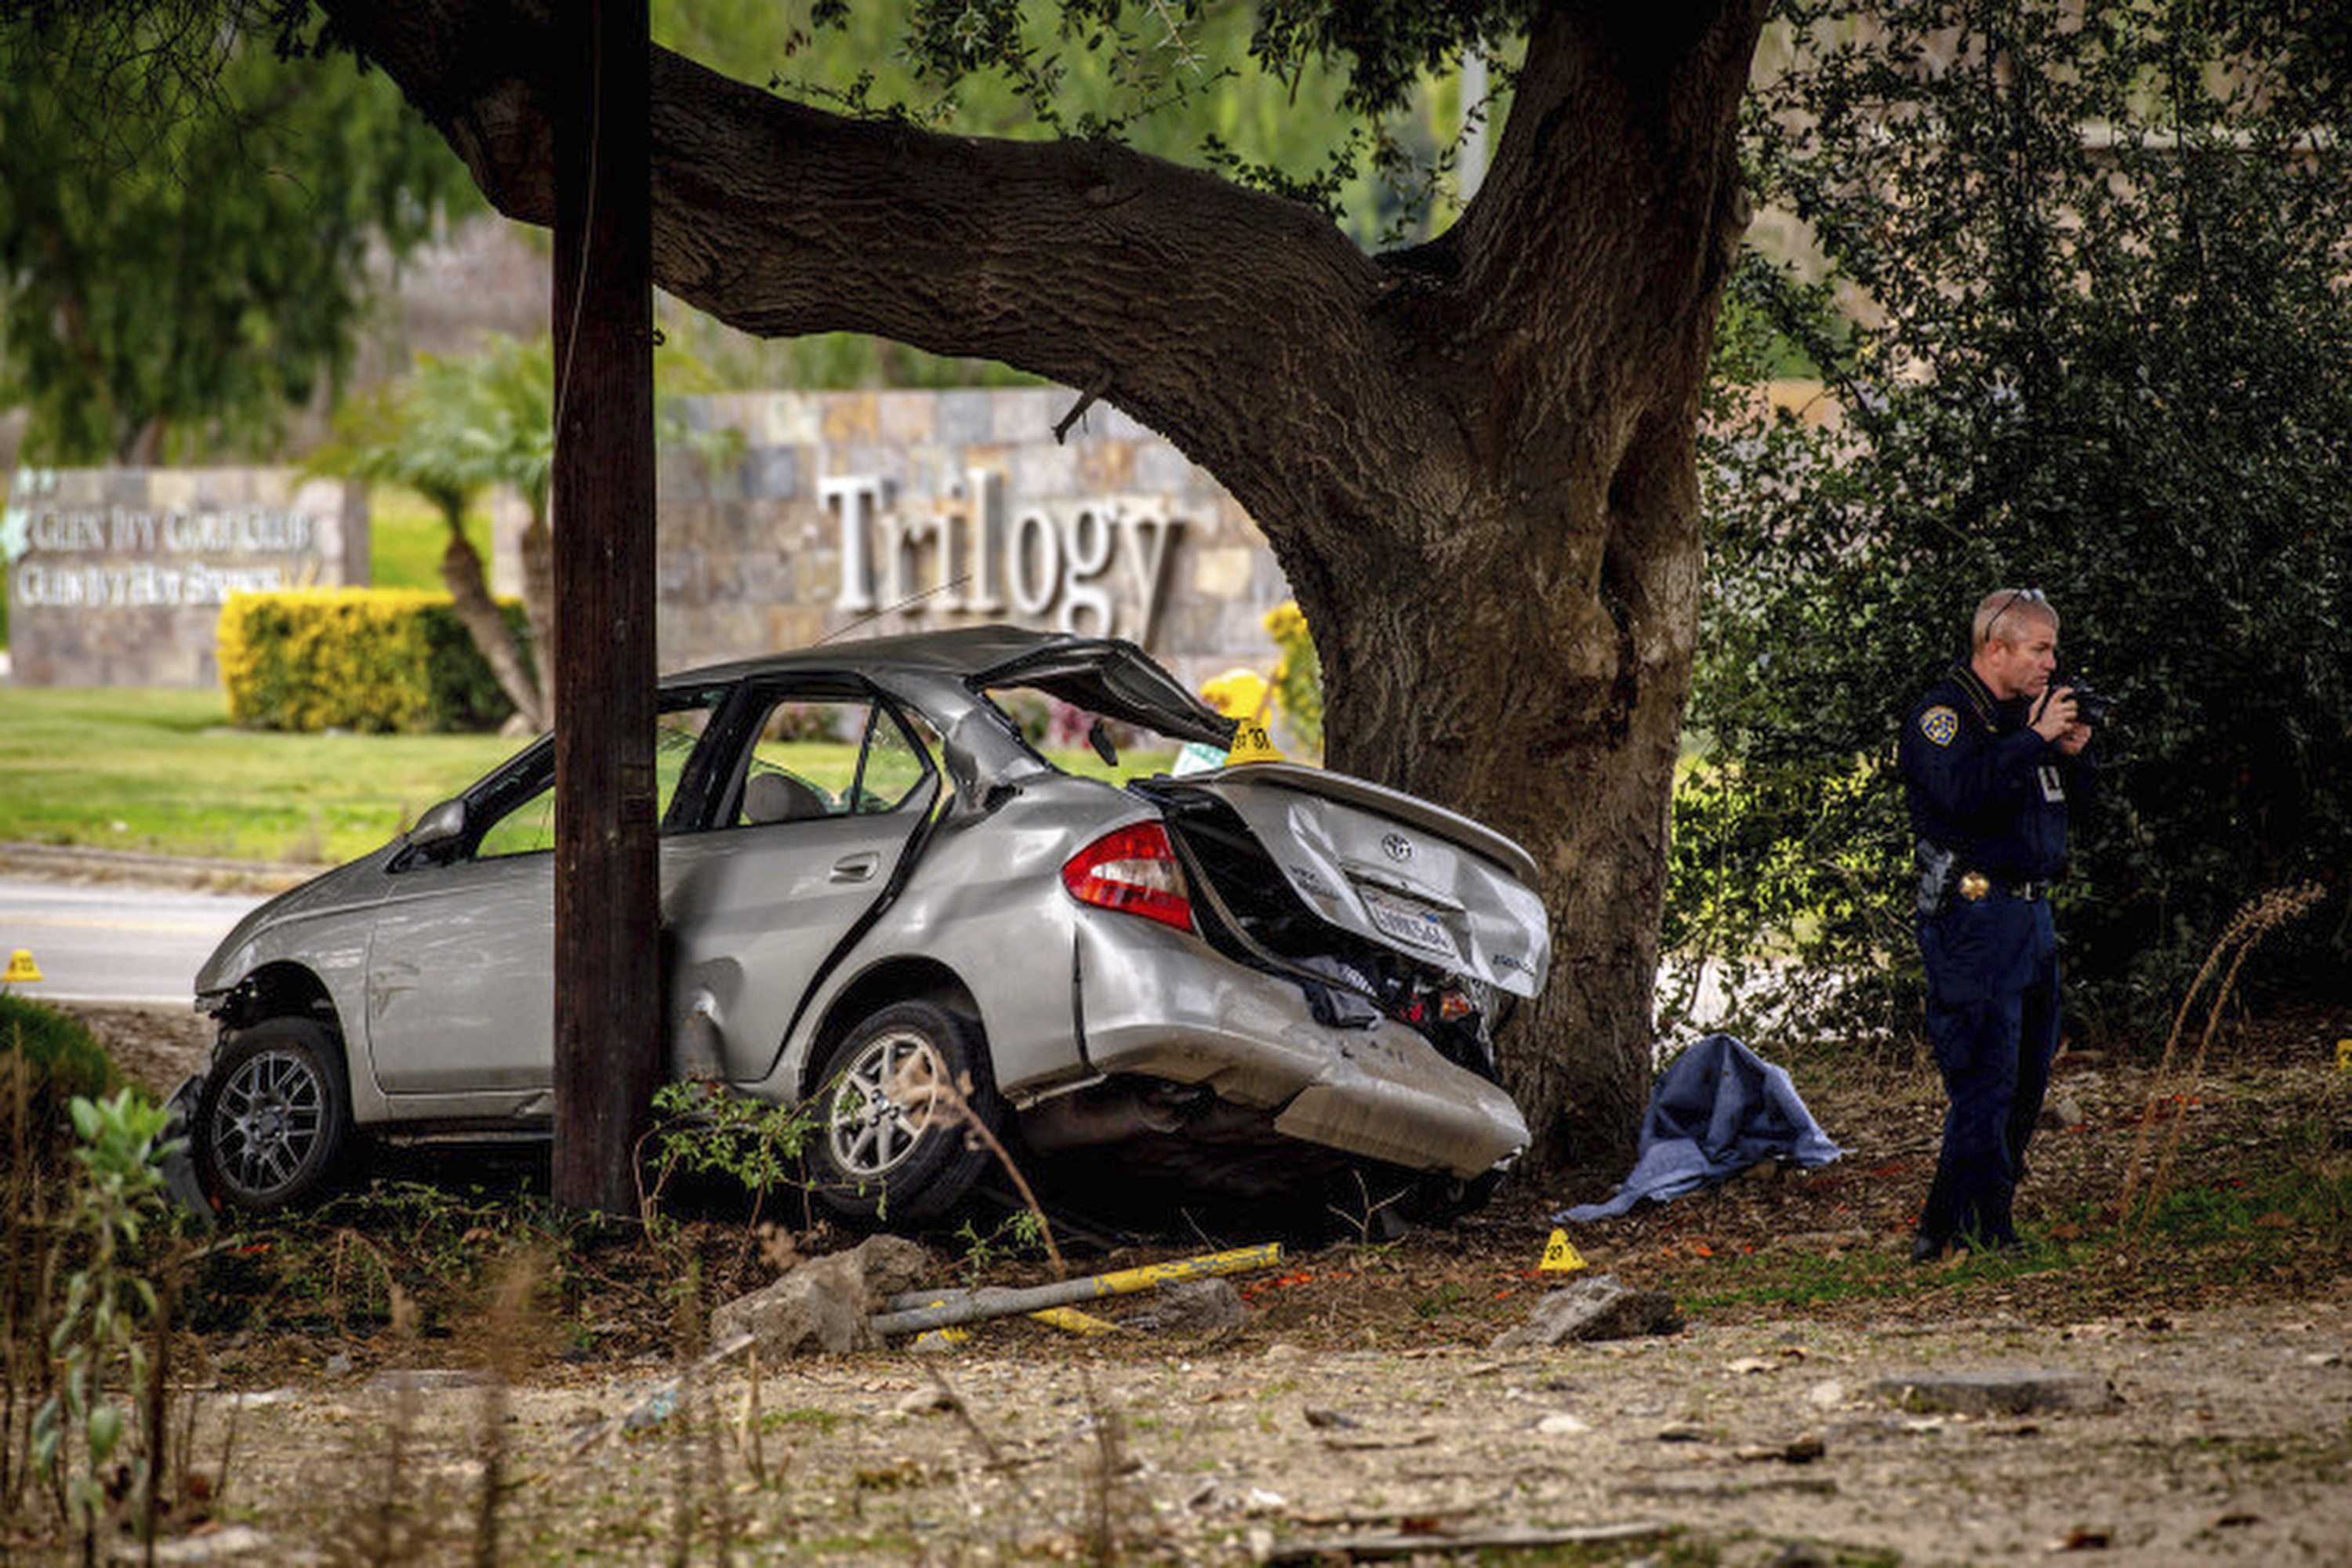 Doorbell Ditch Prank Led to Crash That Killed 3 Teens, Officials Say